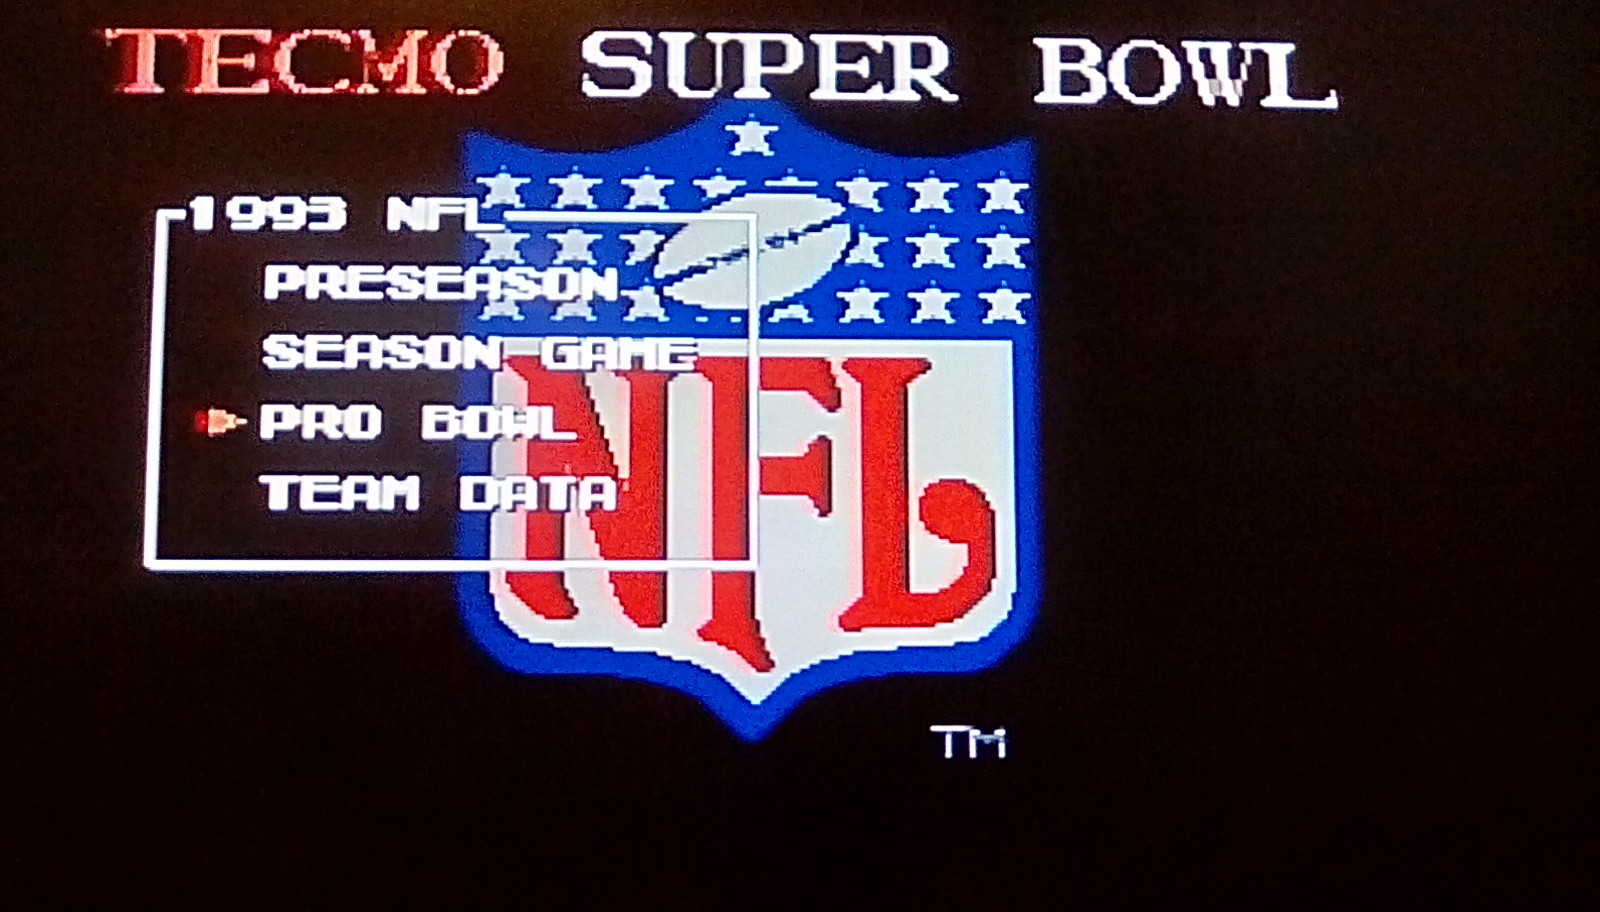 Tecmo Super Bowl [Most Rushing Yards] [Pro Bowl] 399 points